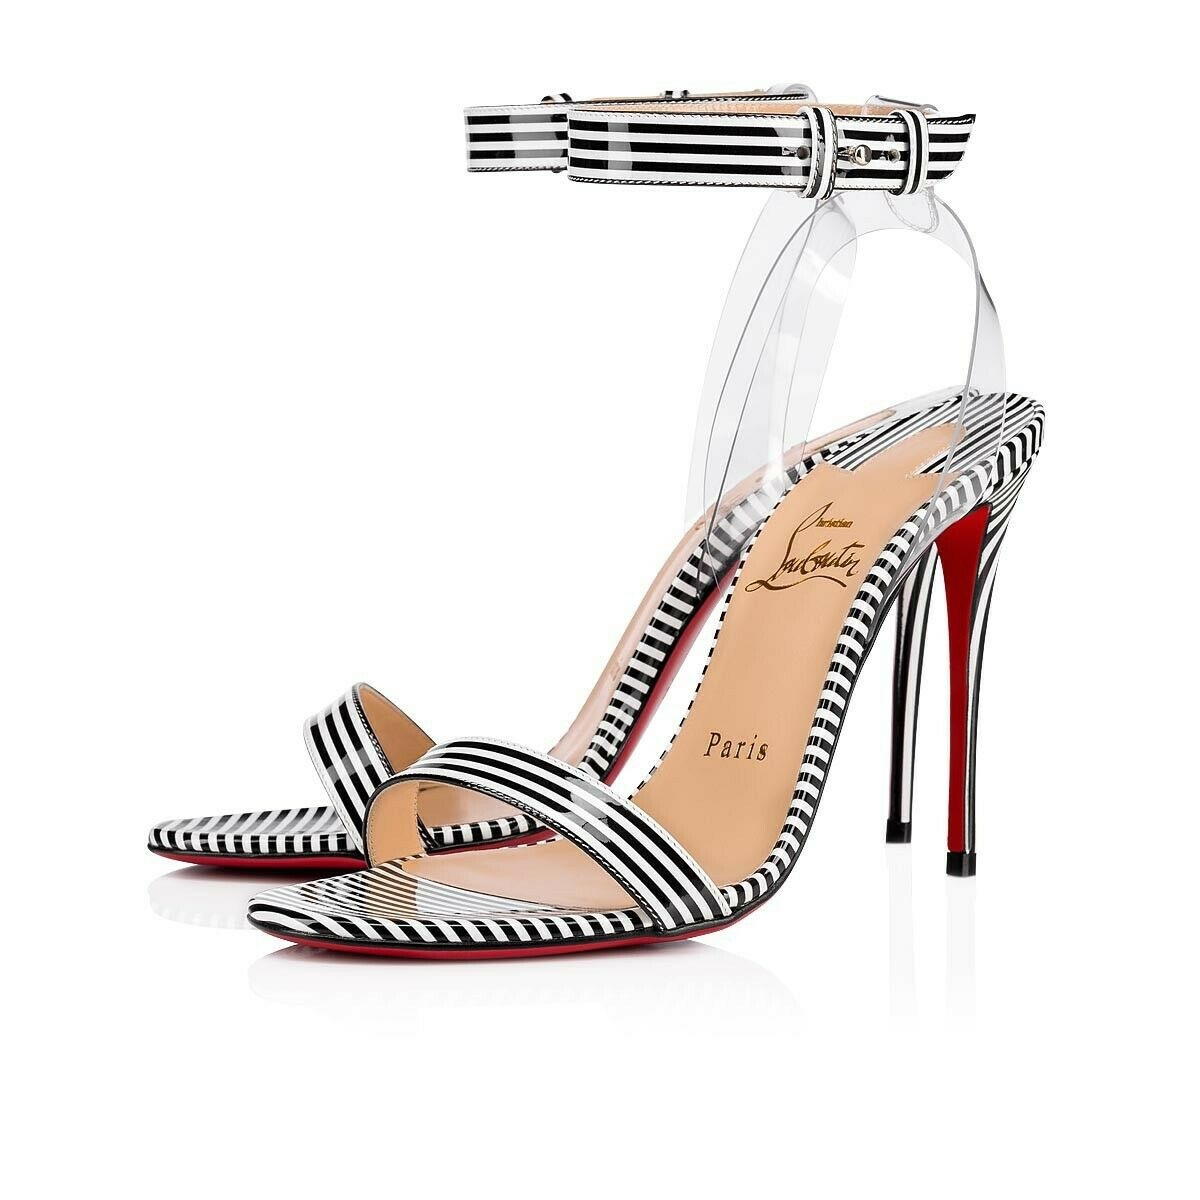 CHRISTIAN LOUBOUTIN Jonatina Patent Leather & PVC Sandal Pump Sz 36   6 US